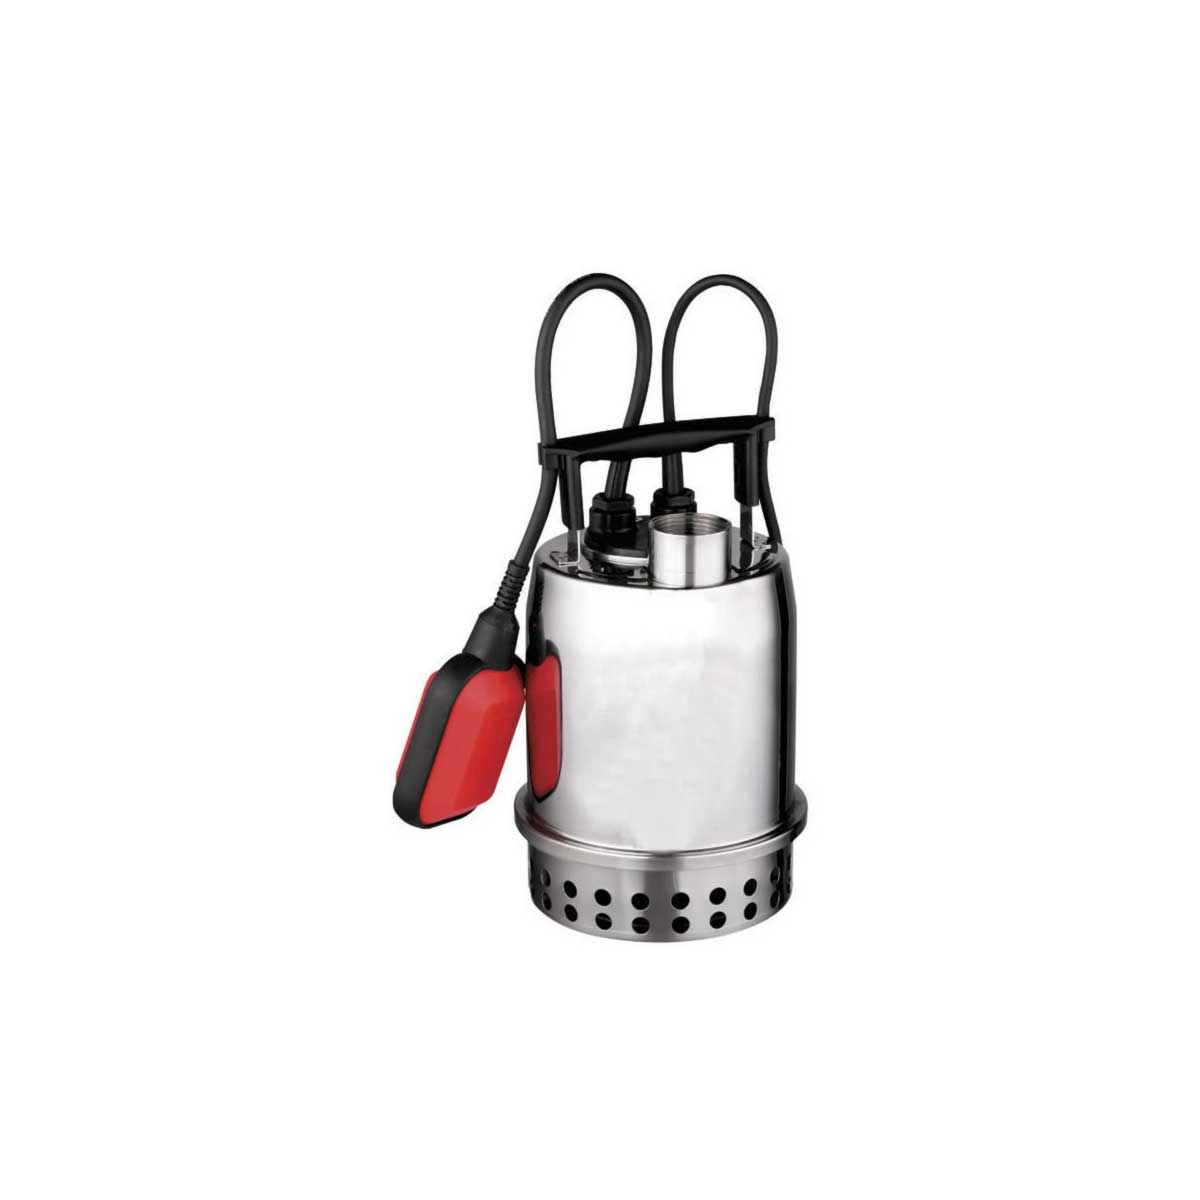 Honda WSP33 Submersible Water Pump